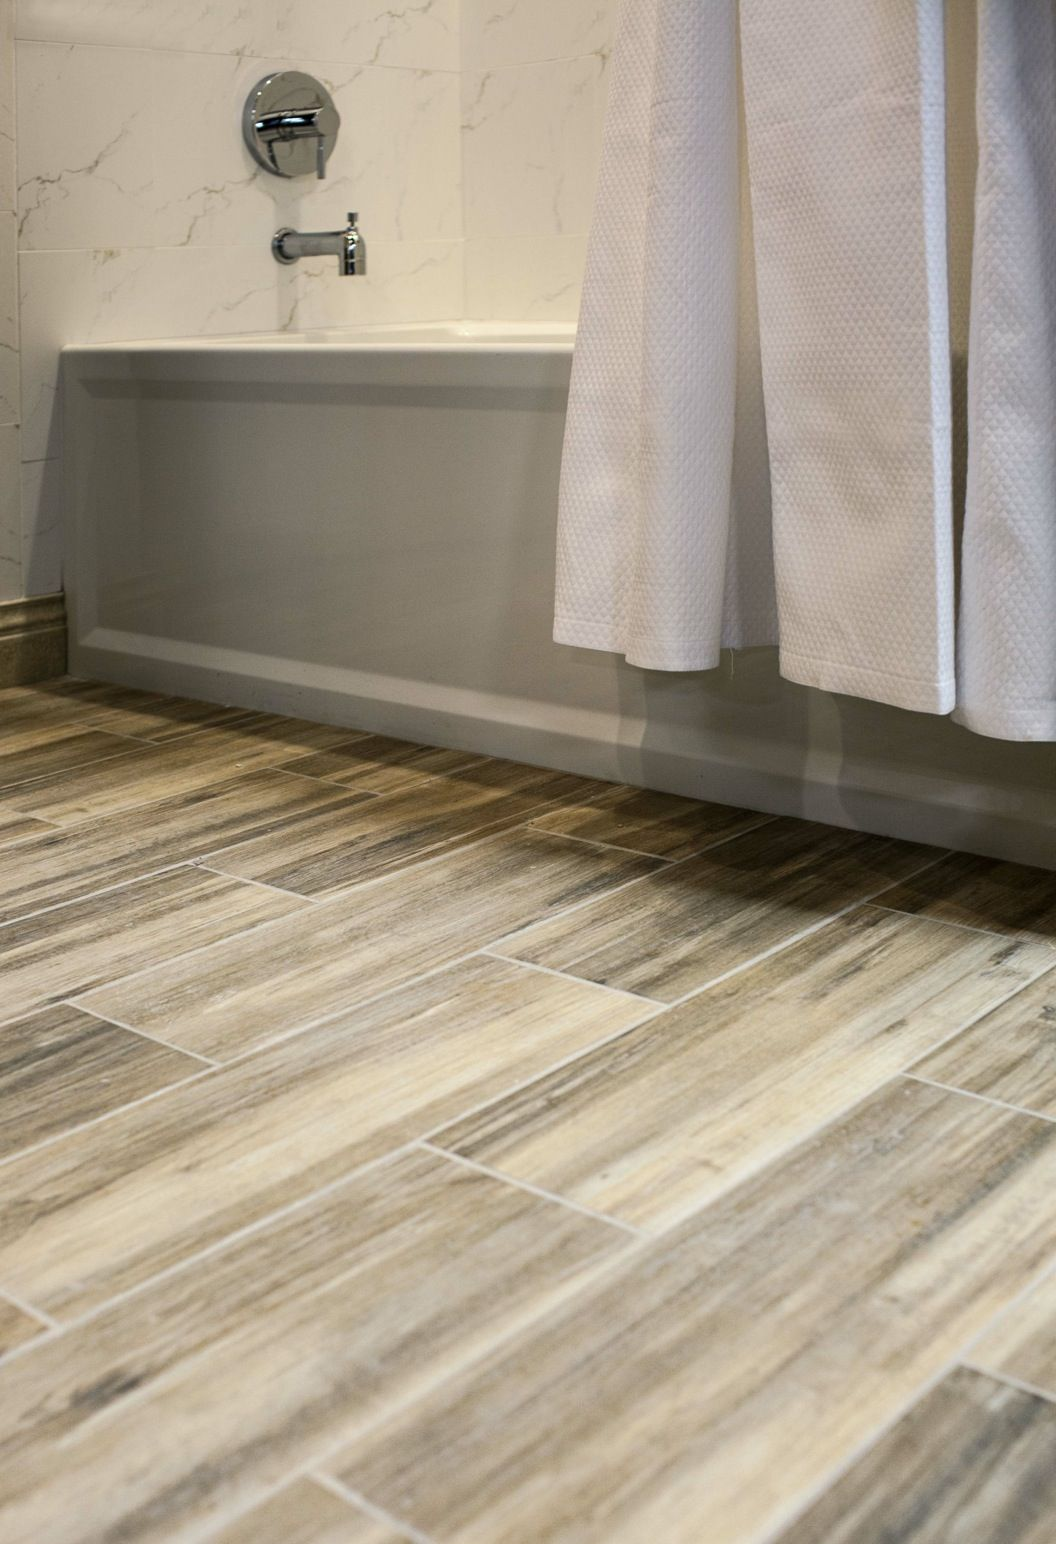 Faux Wood Ceramic Tile In The Bathroom Easy To Clean And Still Gets The Rich Look Of Wood Thetileshop Faux Wood Tiles Wood Floor Bathroom Wood Tile Floors